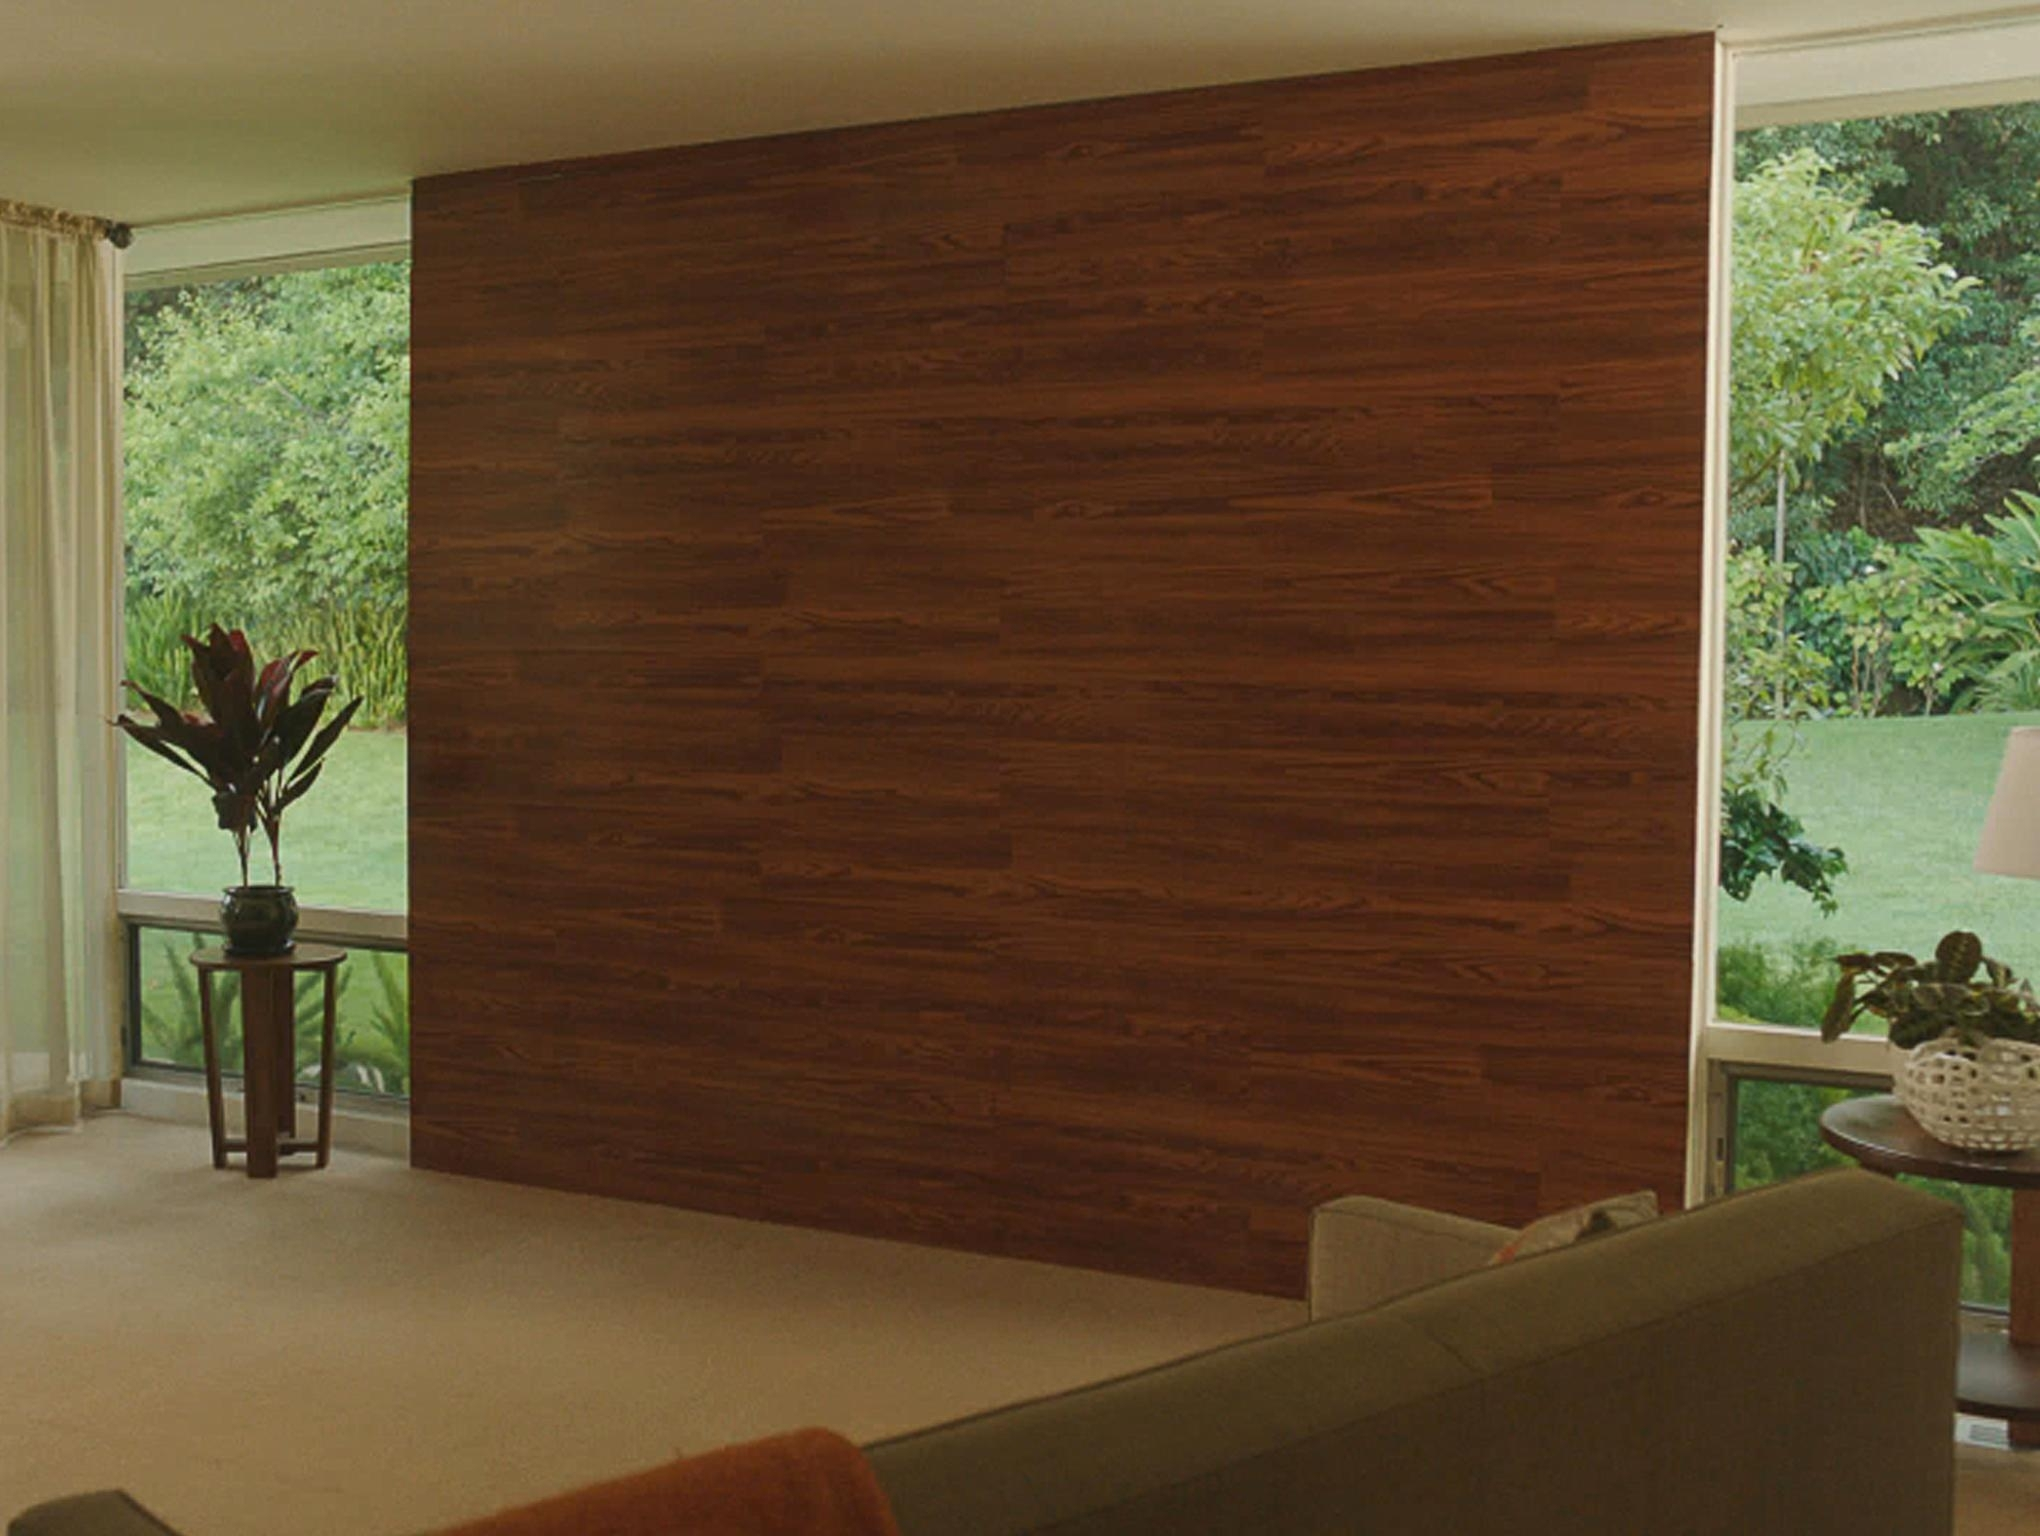 How To Build A Wall Using Laminate Flooring | The Home Depot Community Pertaining To 2017 Wall Accents With Laminate Flooring (View 3 of 15)